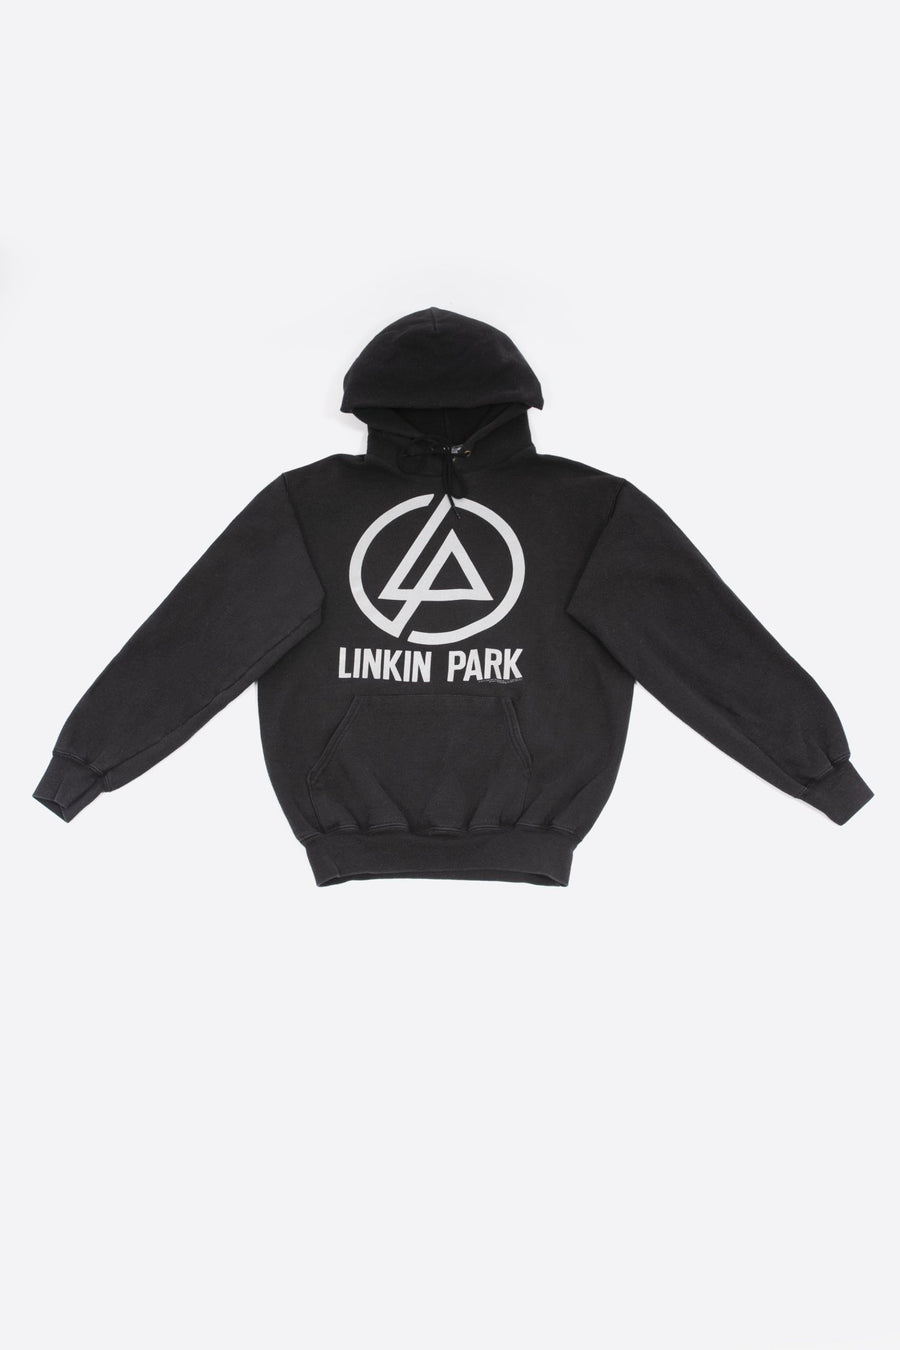 Hoodie Linkin Park Logo Silver 2012 - WASTED PARIS